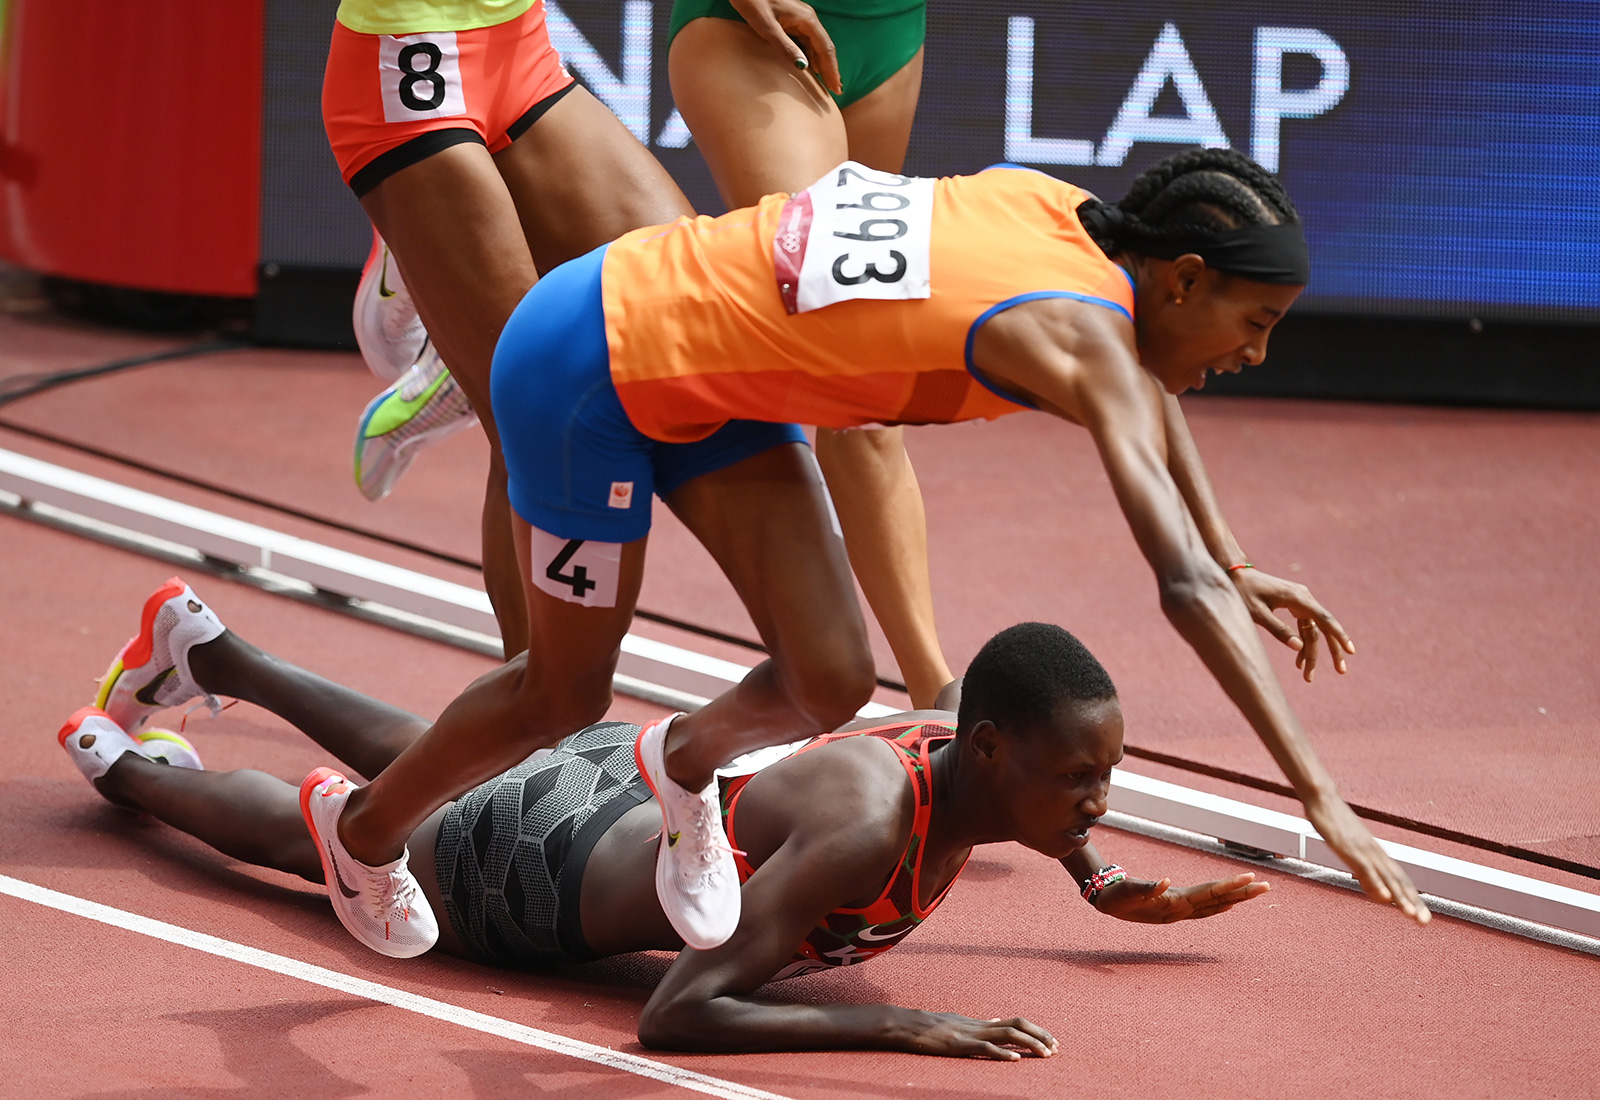 Dutch runner Sifan Hassan and Kenya's Edinah Jebitok trip and fall during a 1,500 meter heat on August 2.